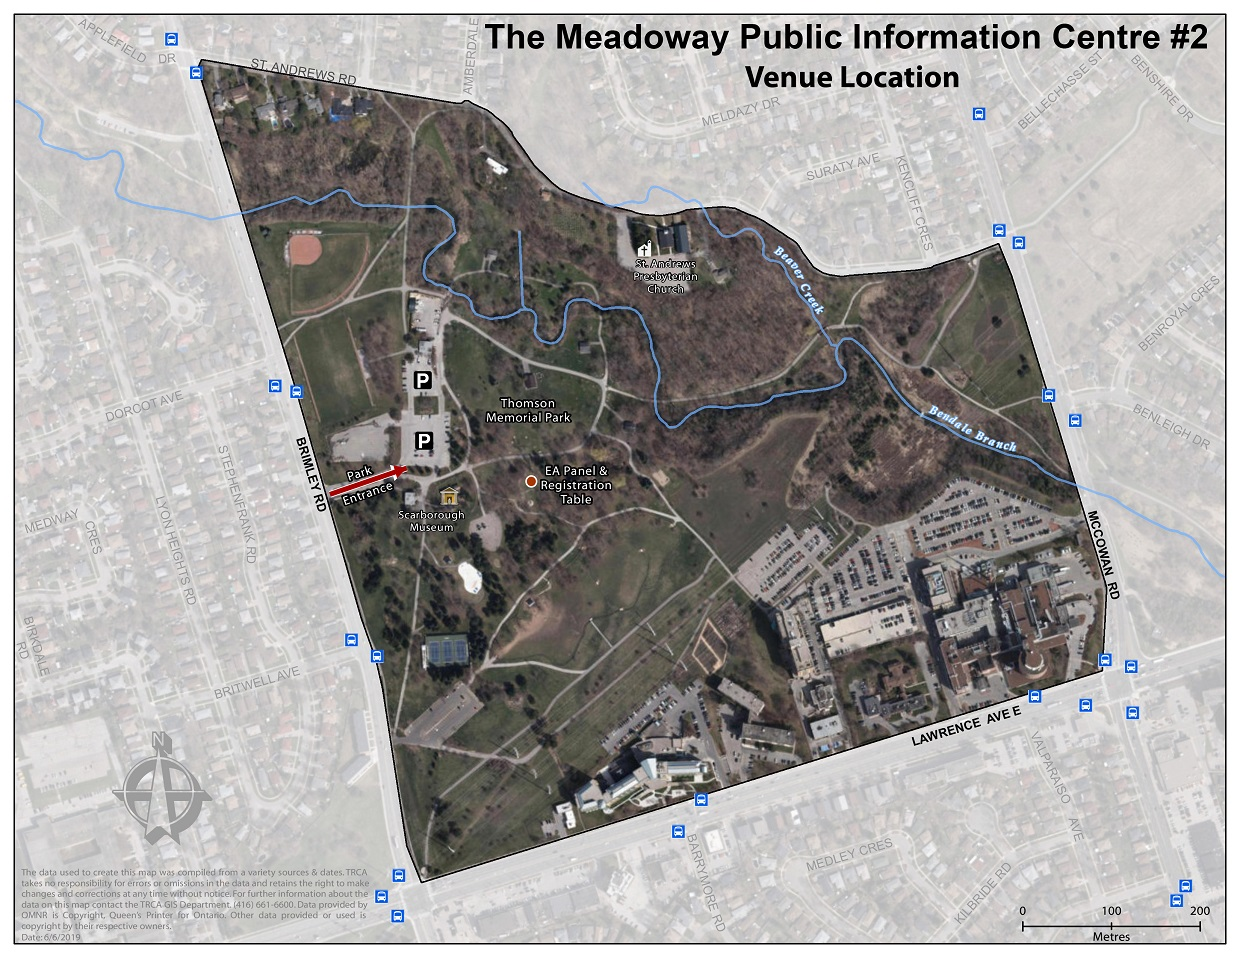 map of The Meadoway PIC 2 location